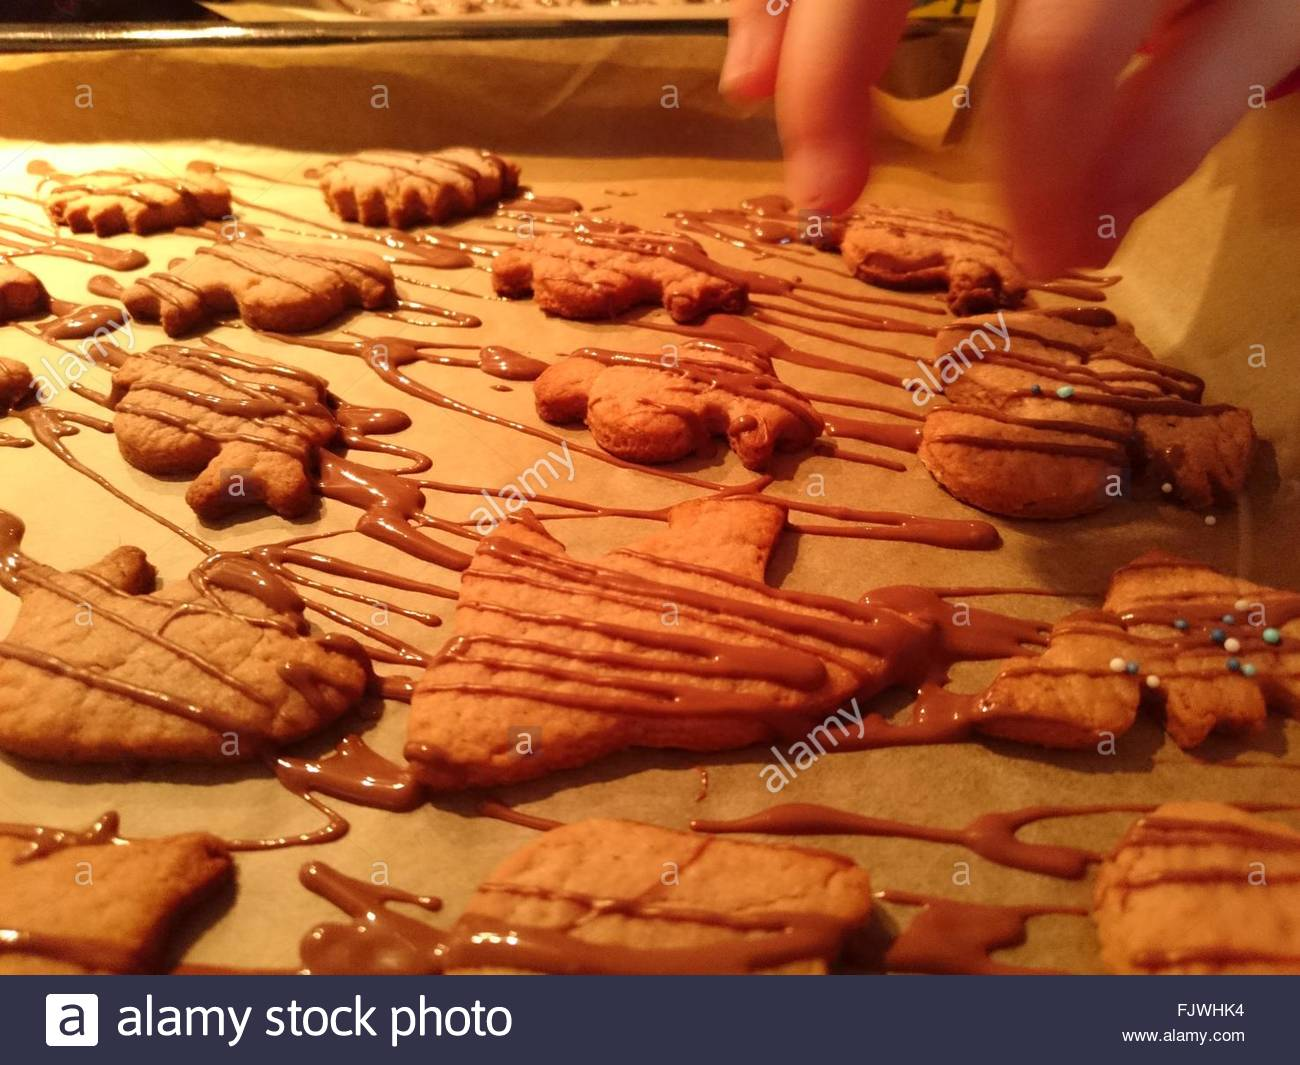 Cropped Image Of Hand Decorating Cookies - Stock Image